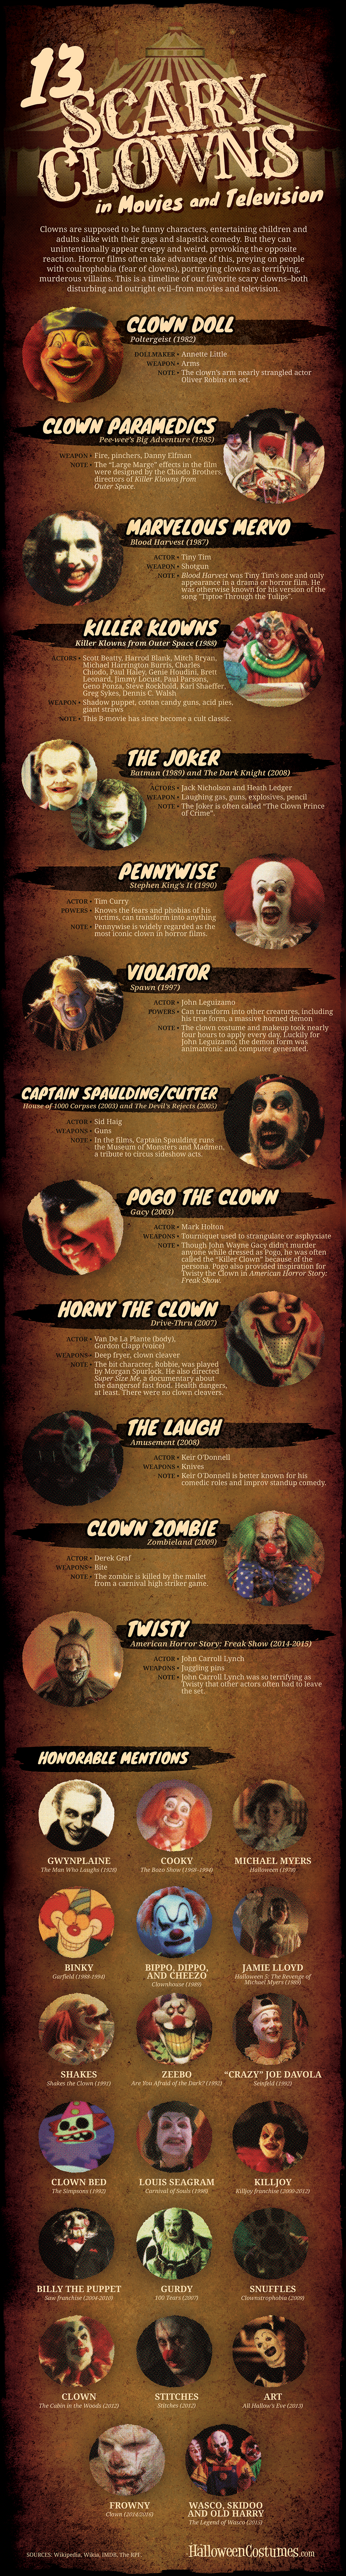 13 Scary Clowns Infographic - A Look at Some of TV and Film's Scariest Clowns